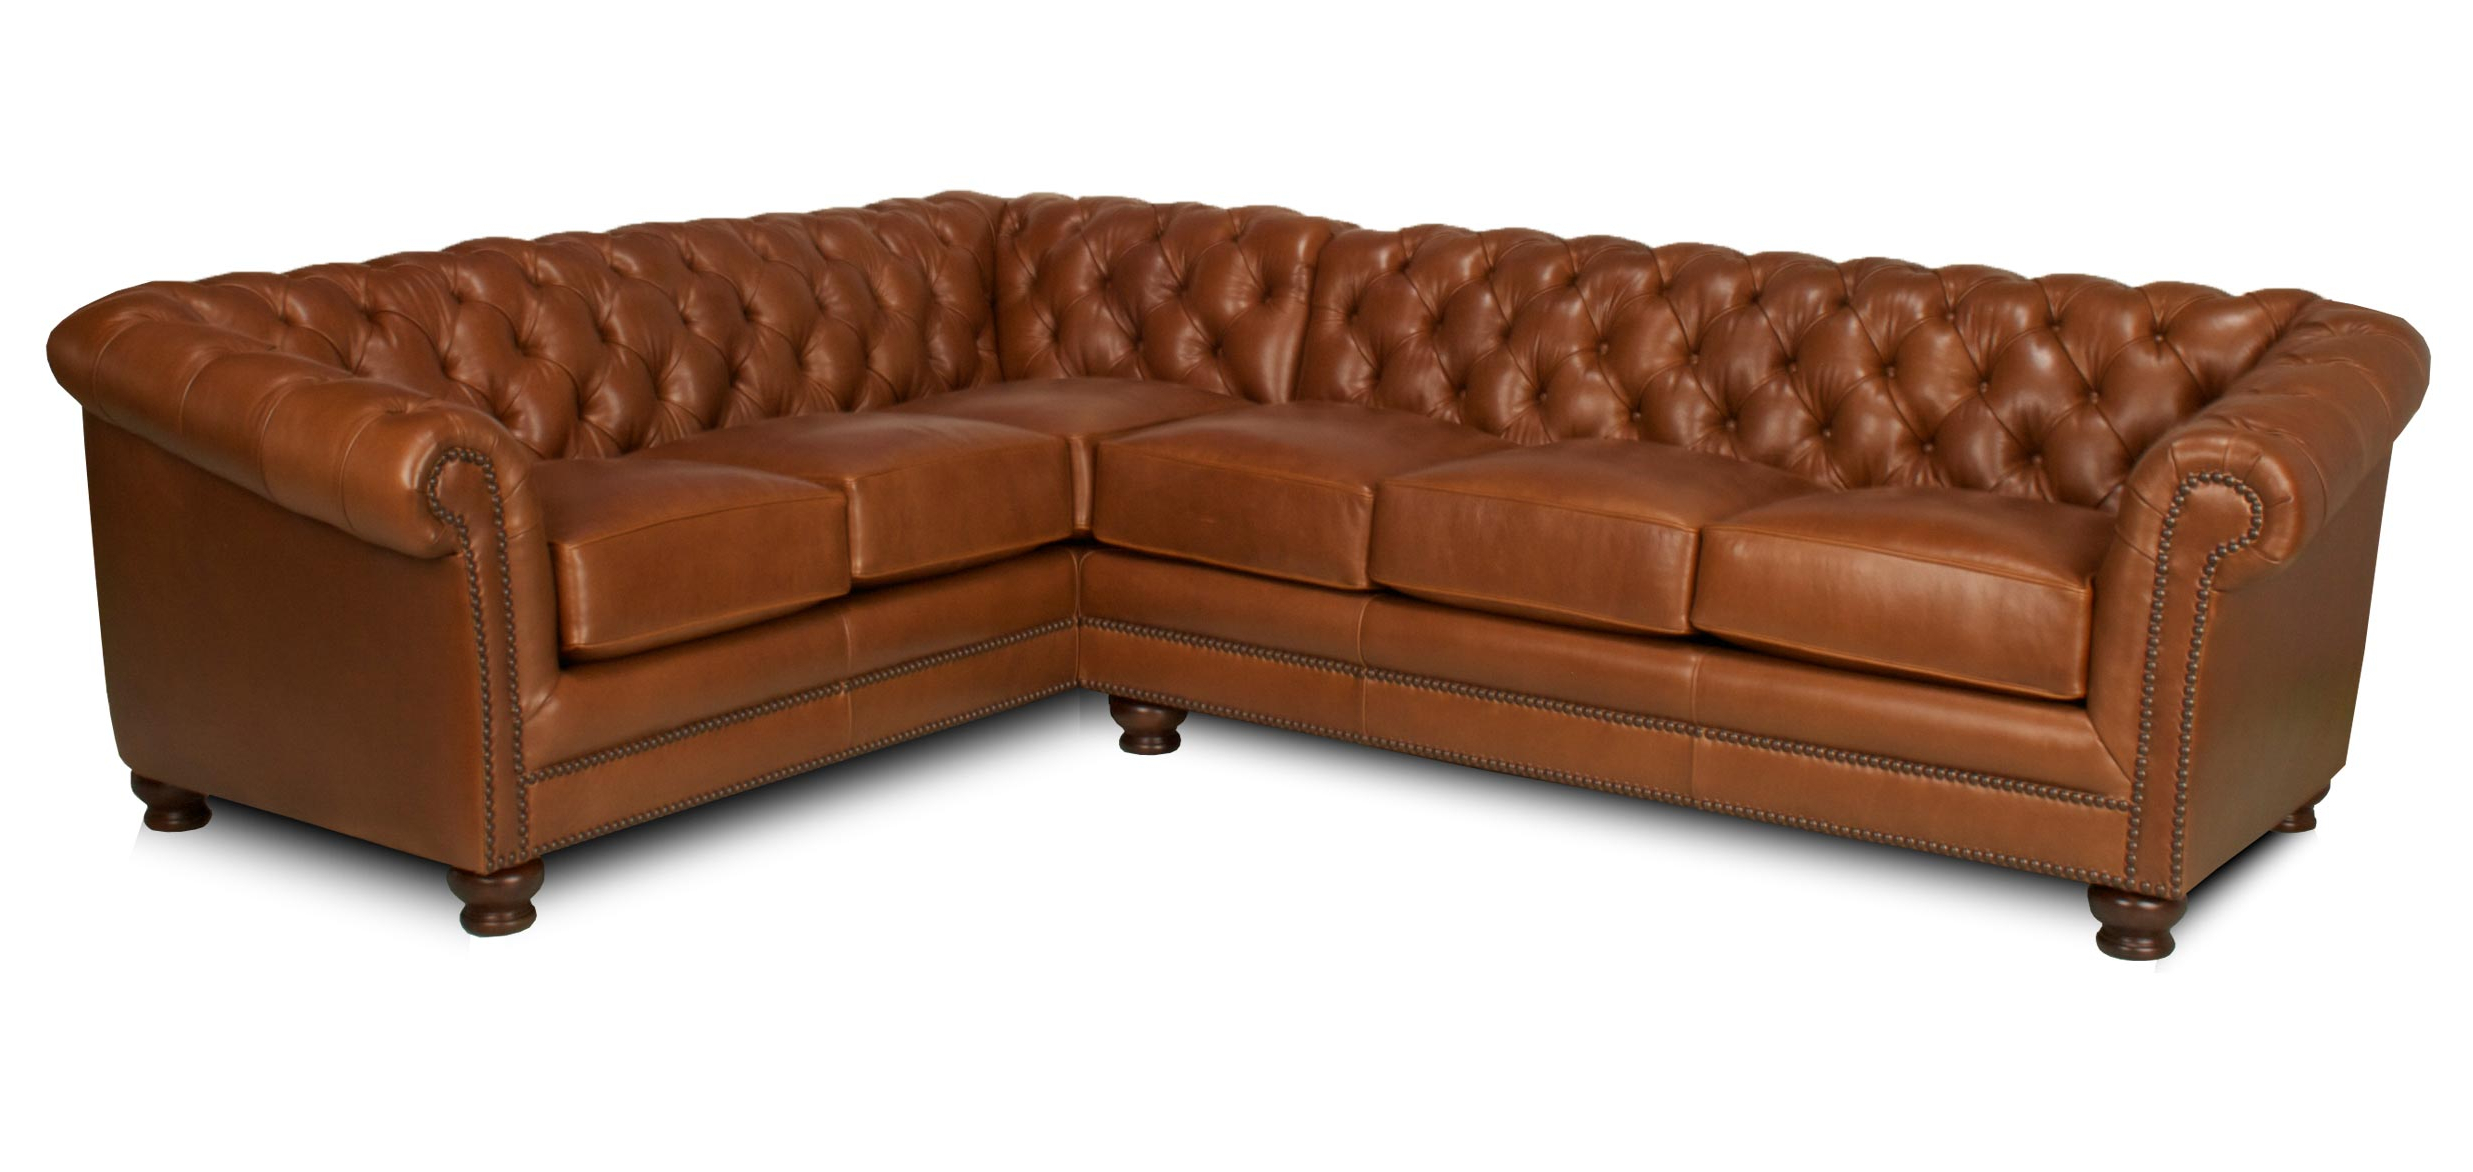 Travis Cognac Leather 6 Piece Power Reclining Sectionals With Power Headrest & Usb For Well Liked Cognac Sectional Sofa @ay13 – Roccommunity (View 13 of 20)